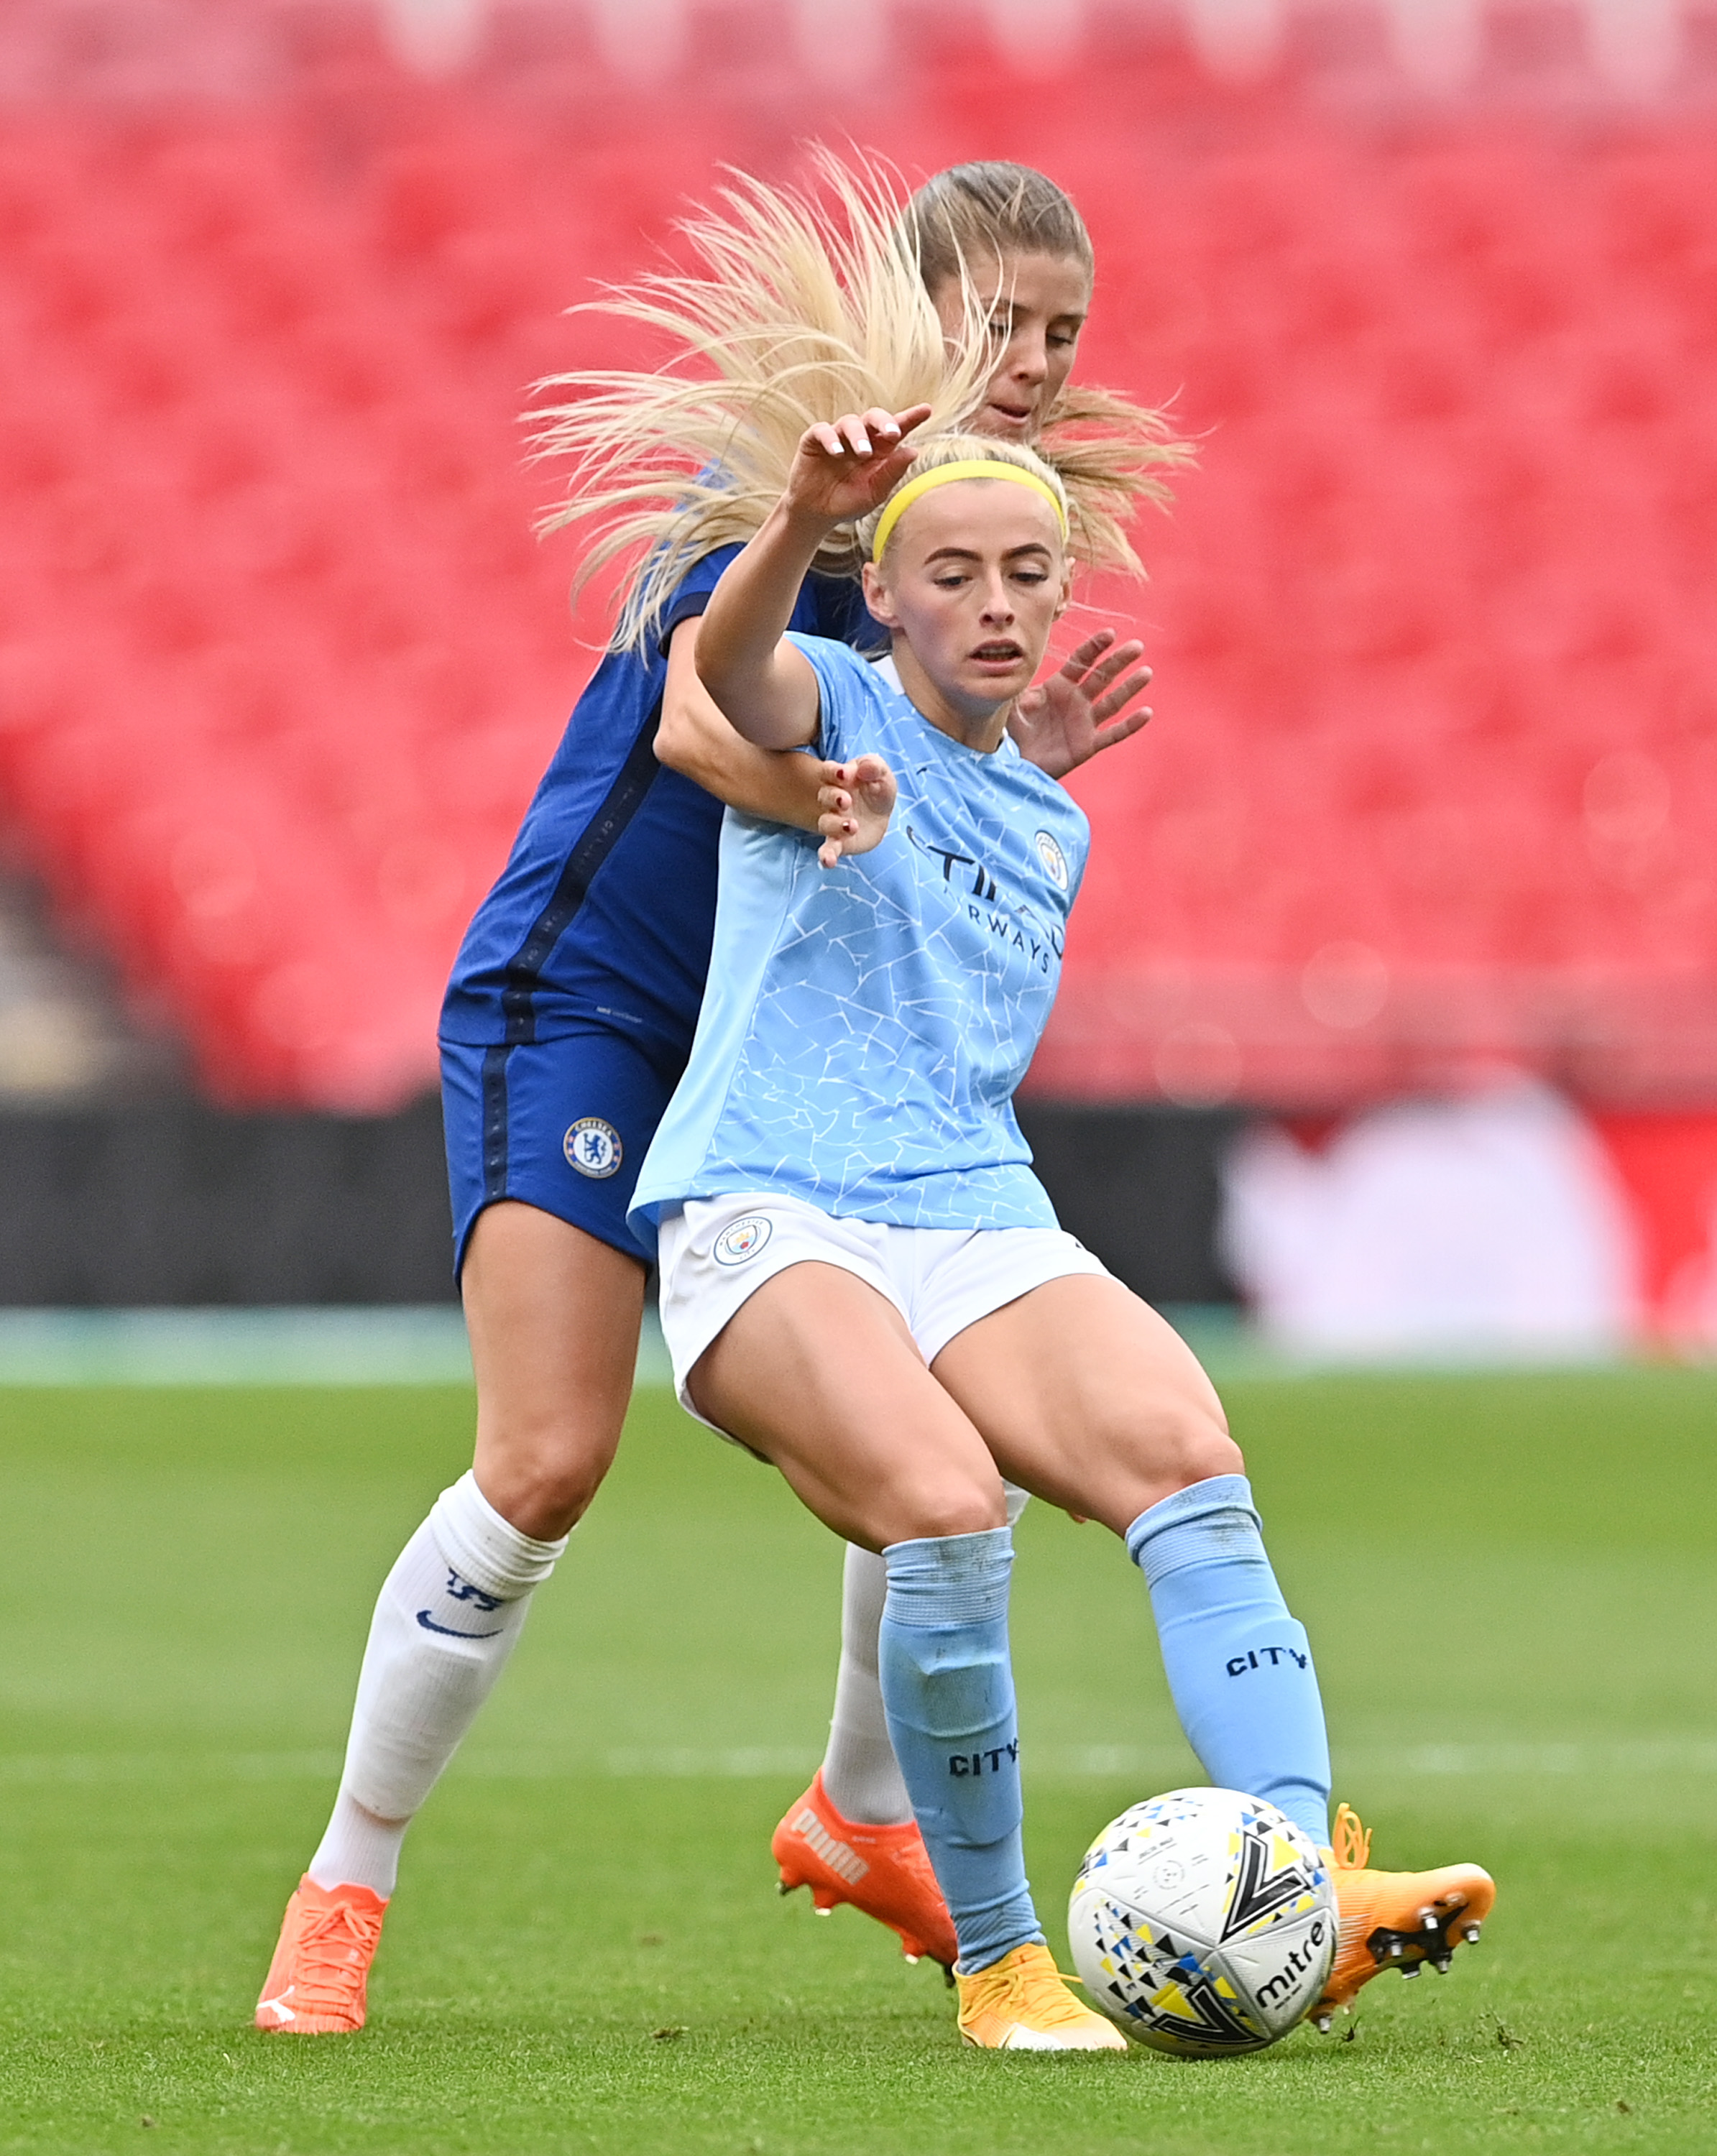 Chelsea v Manchester City - Women's FA Community Shield